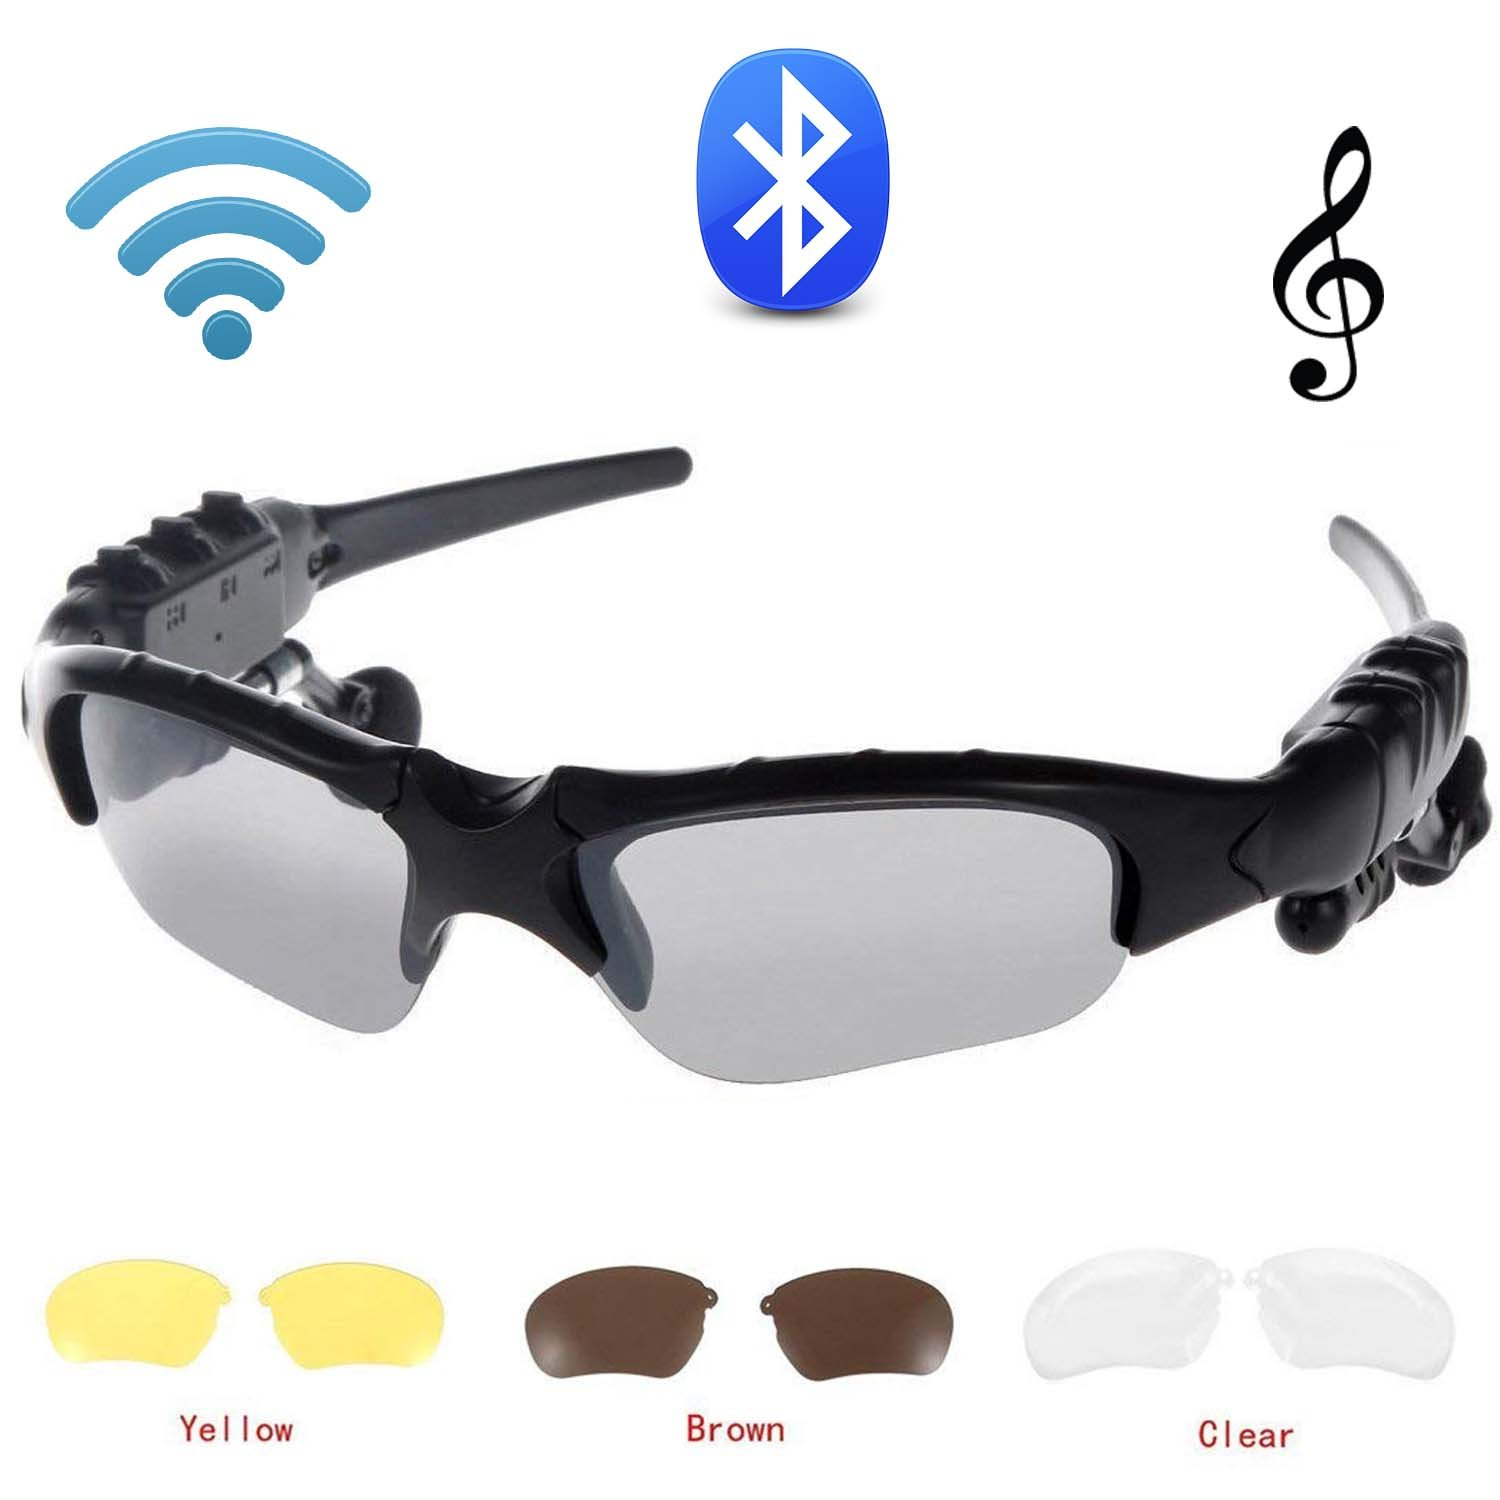 Jinserta Wireless Bluetooth Stereo Headphones Digital Lenses Sunglasses Music MP3Player Music Headphones with Camera for iPhone Android Smart Phones and all Devices with Bluetooth